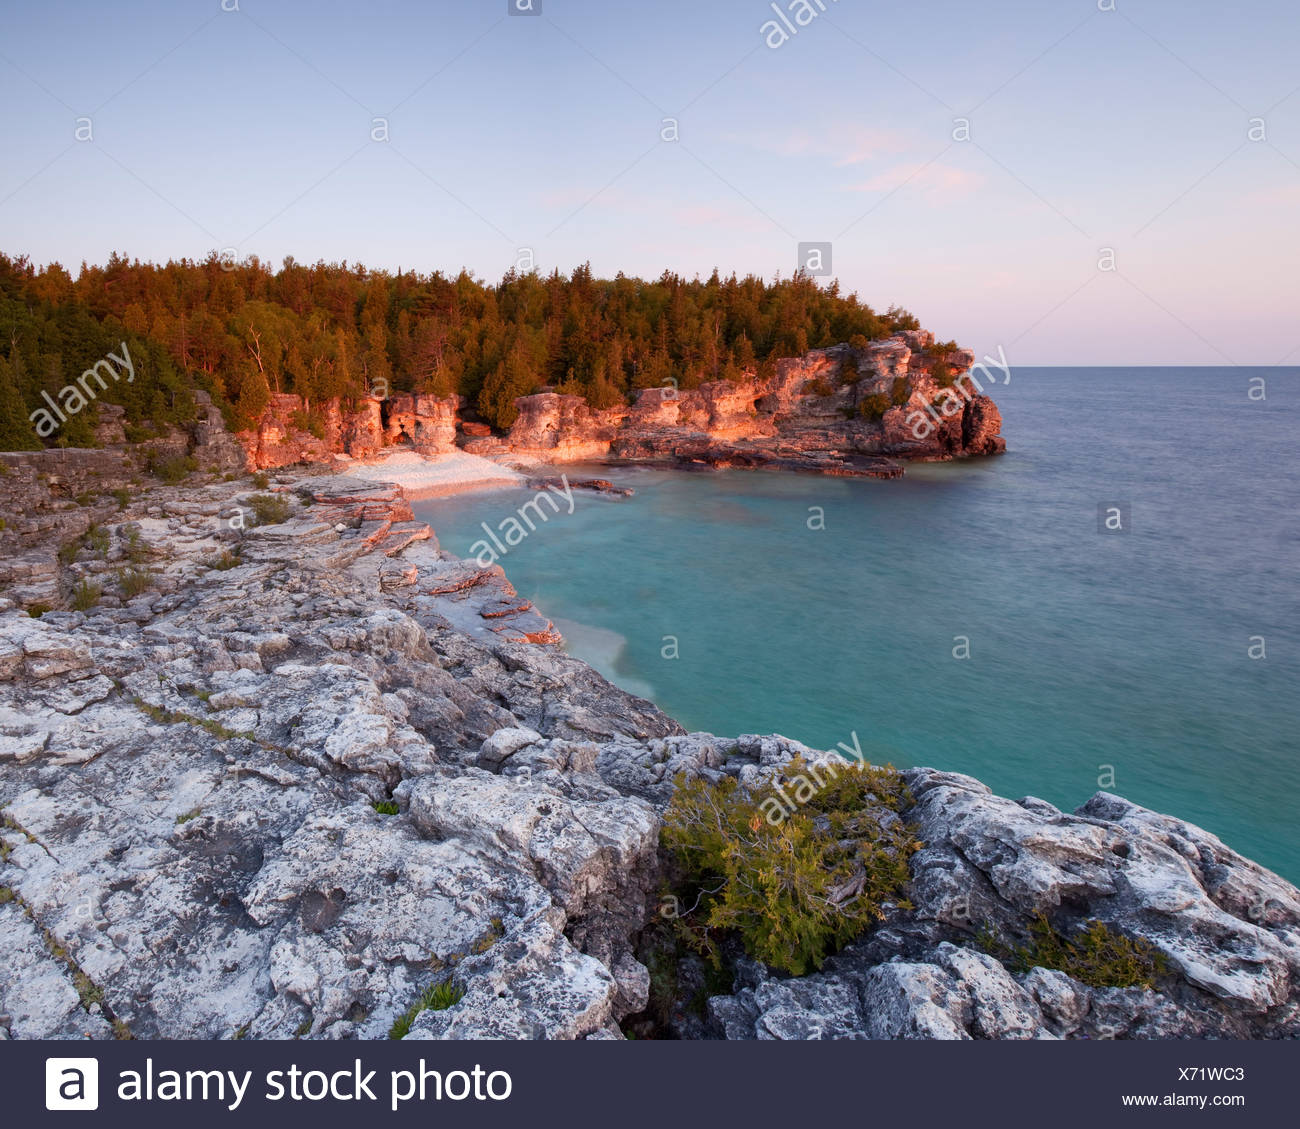 Indian Head Cove at sunset on the Georgian Bay side of the Bruce Peninsula - Stock Image